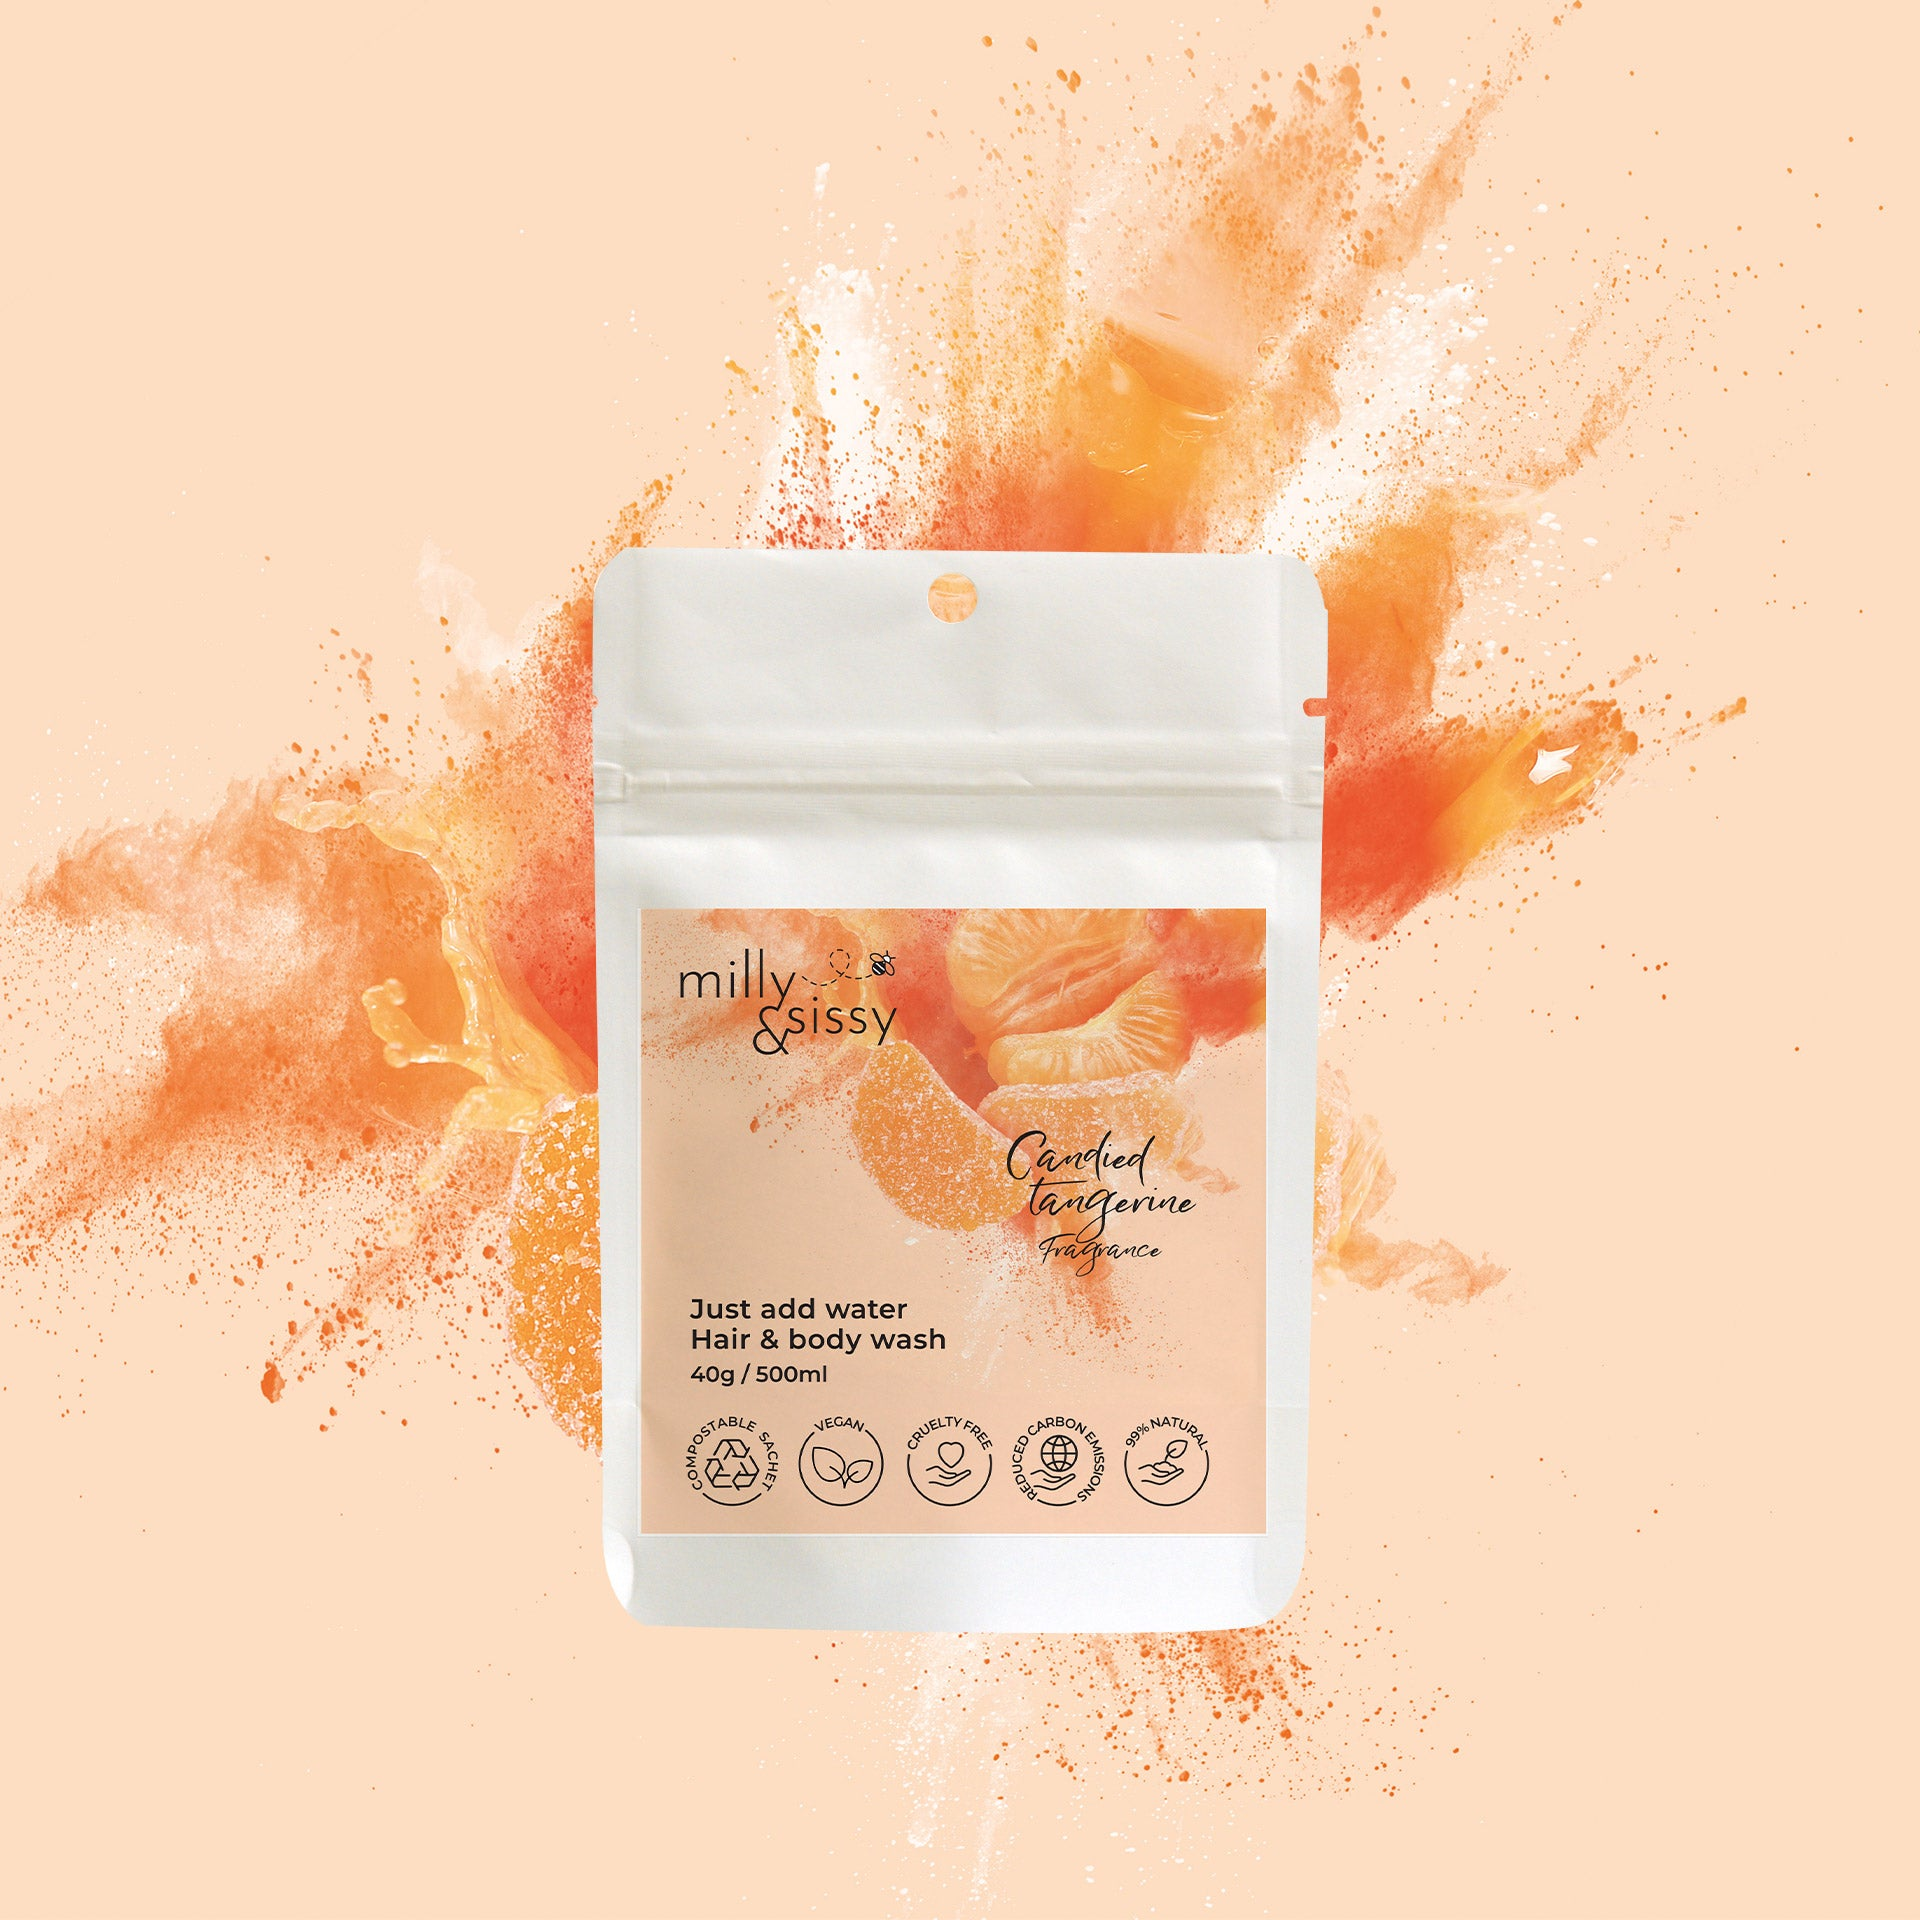 Zero Waste Candied Tangerine Hair & Body Wash Refill